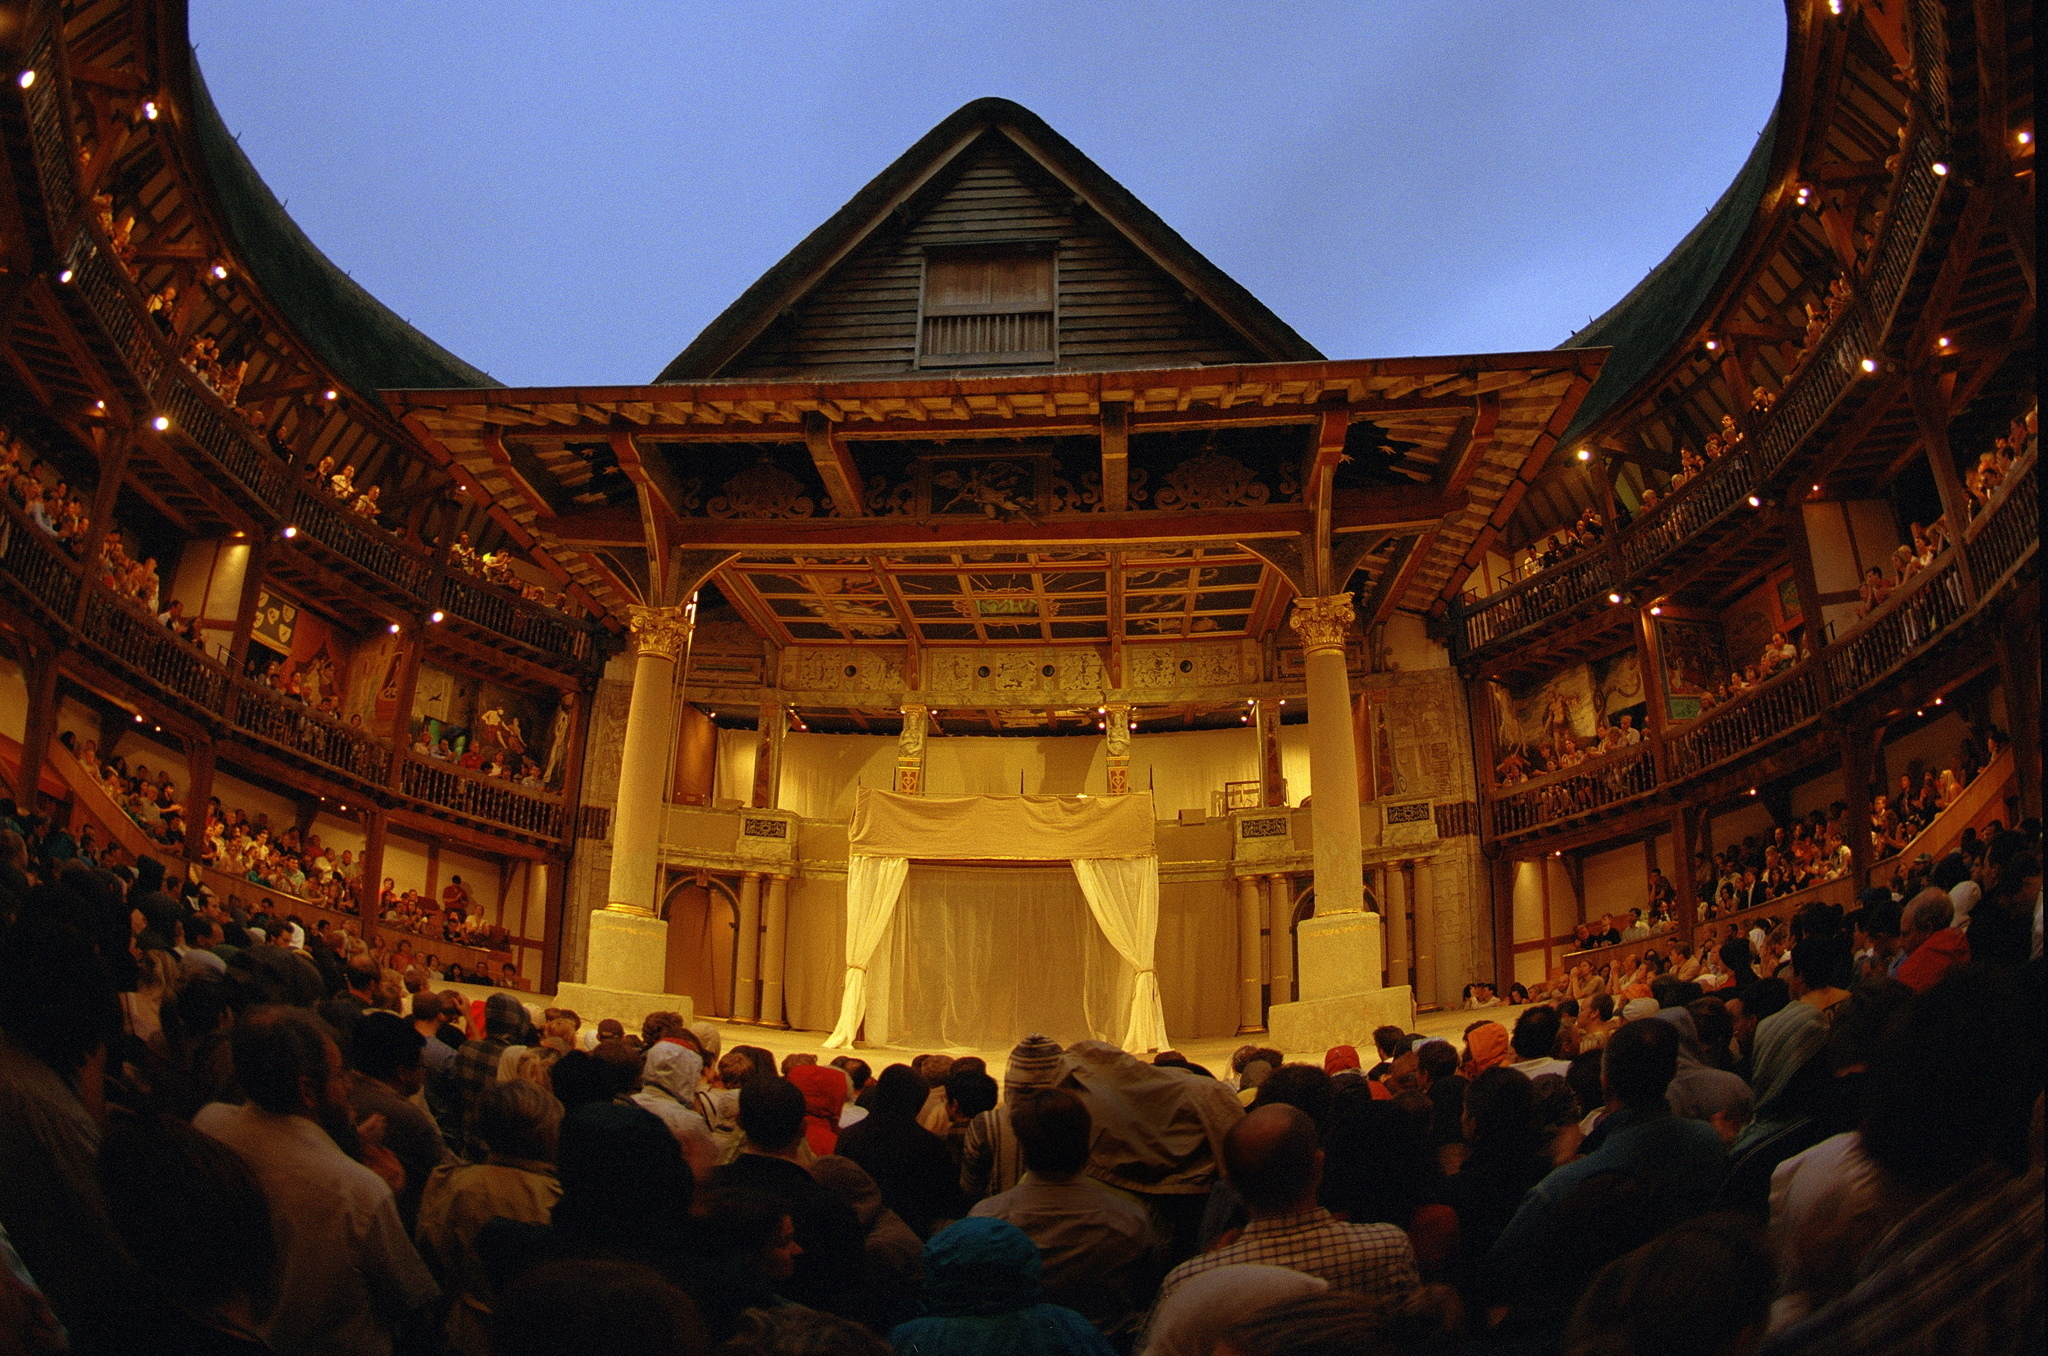 Seven easy ways to see theatre for cheap in London